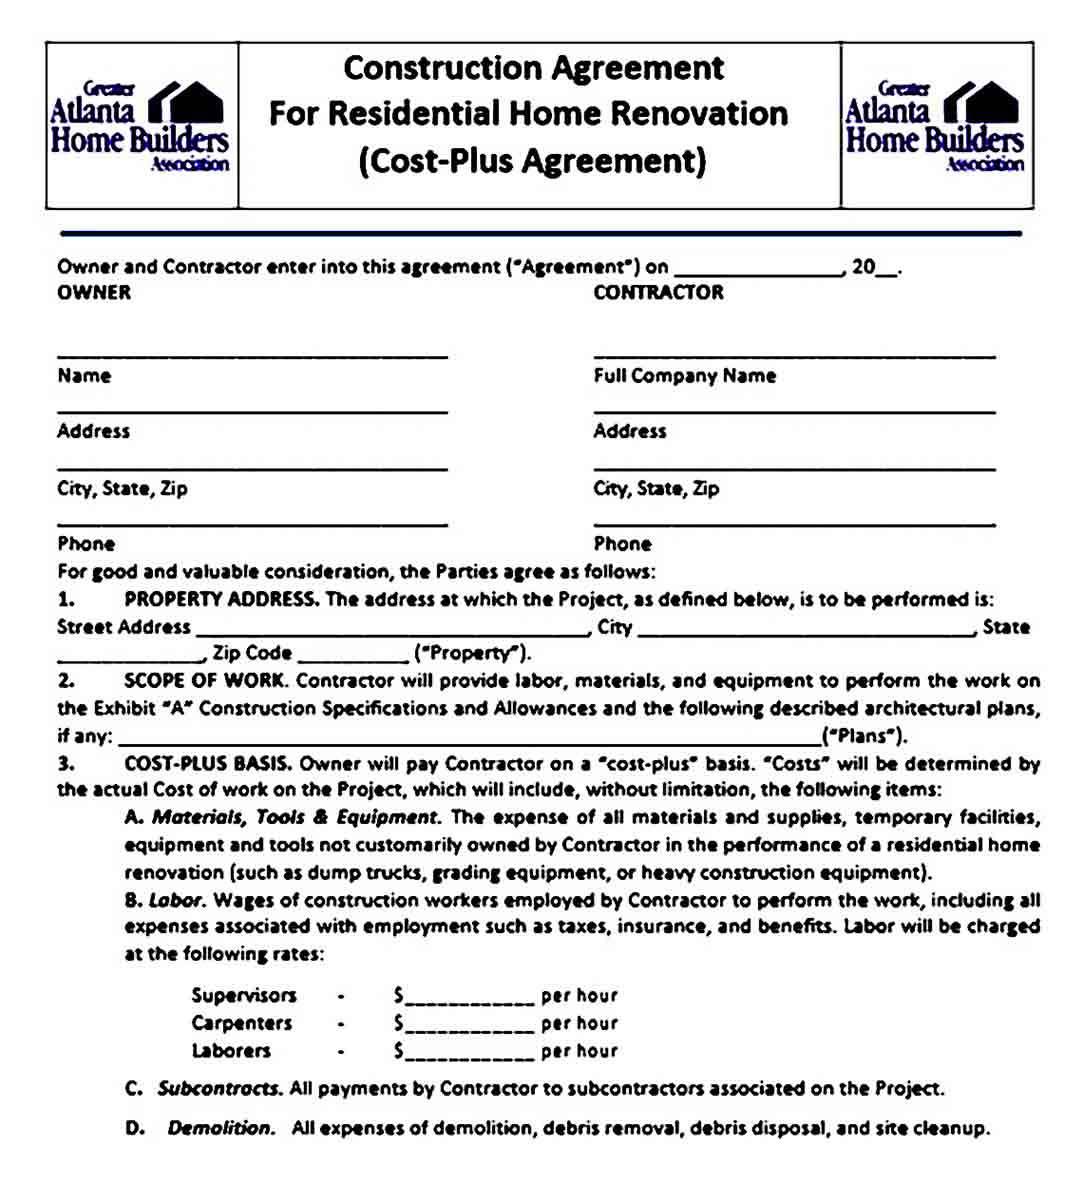 Construction Agreement For Residential